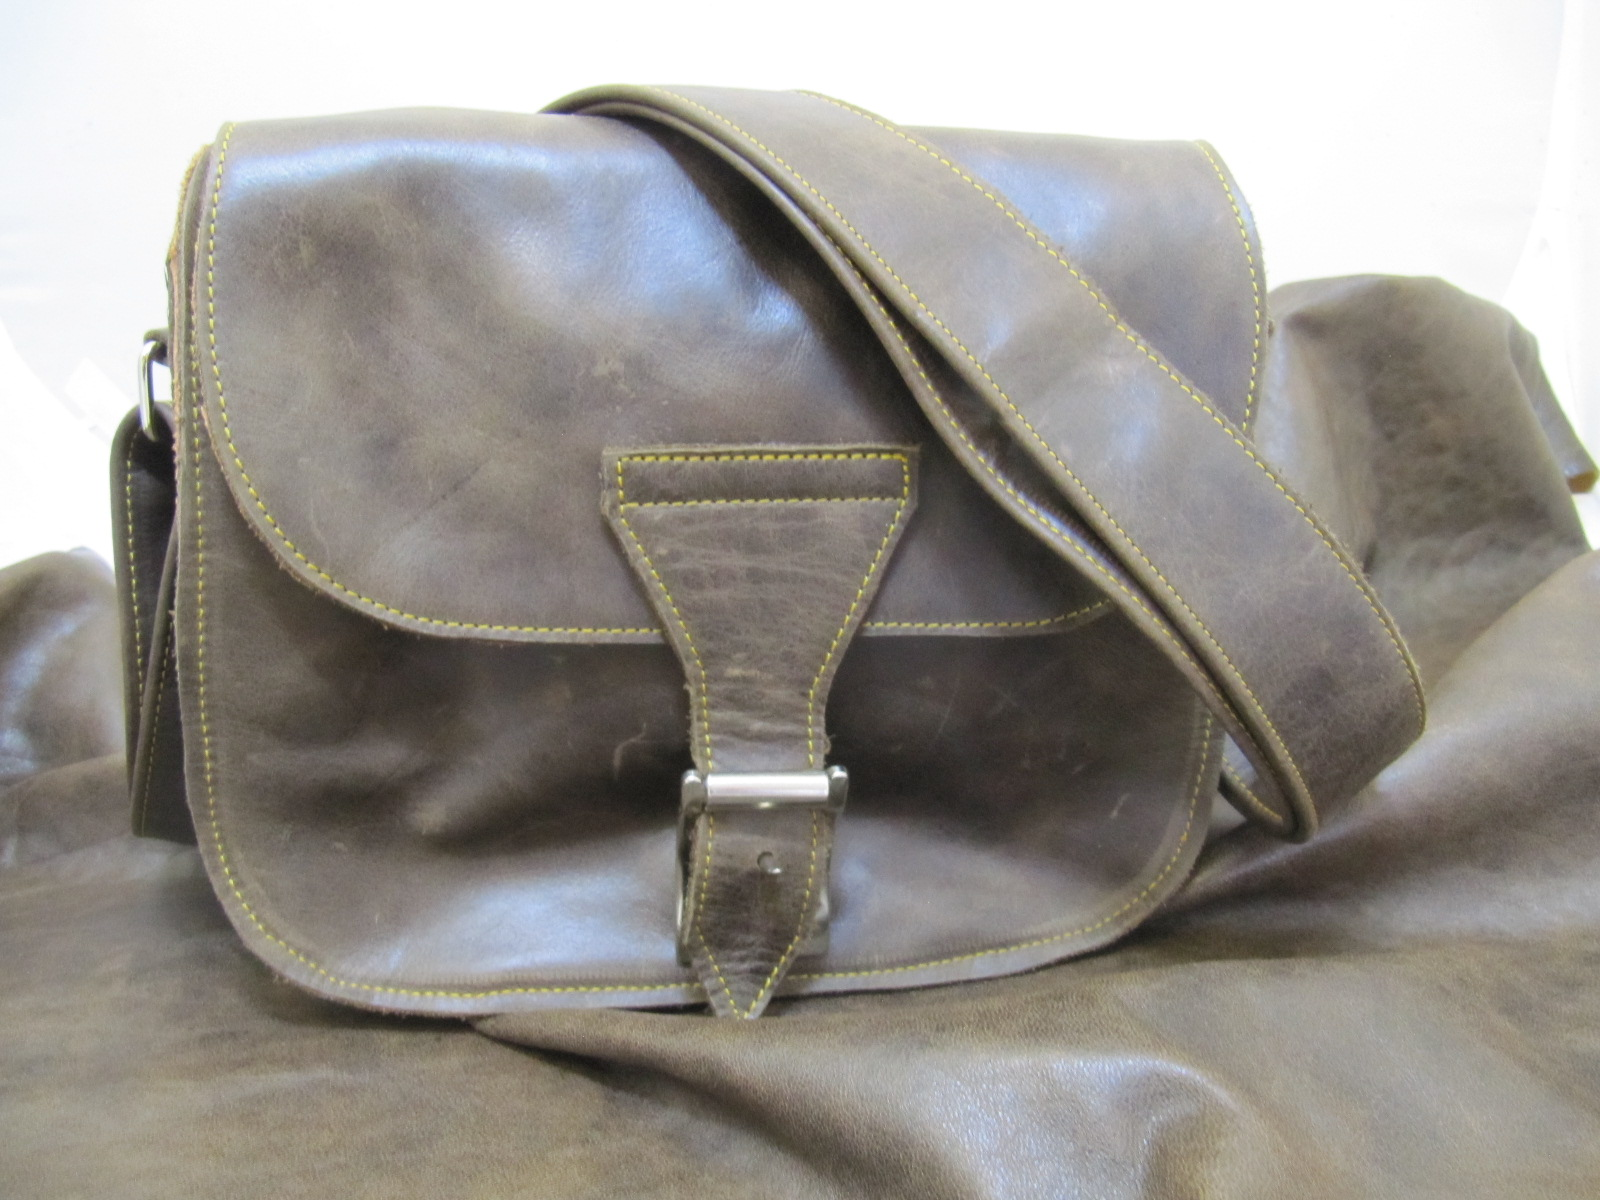 Vintage Brown leather cartridge style bag